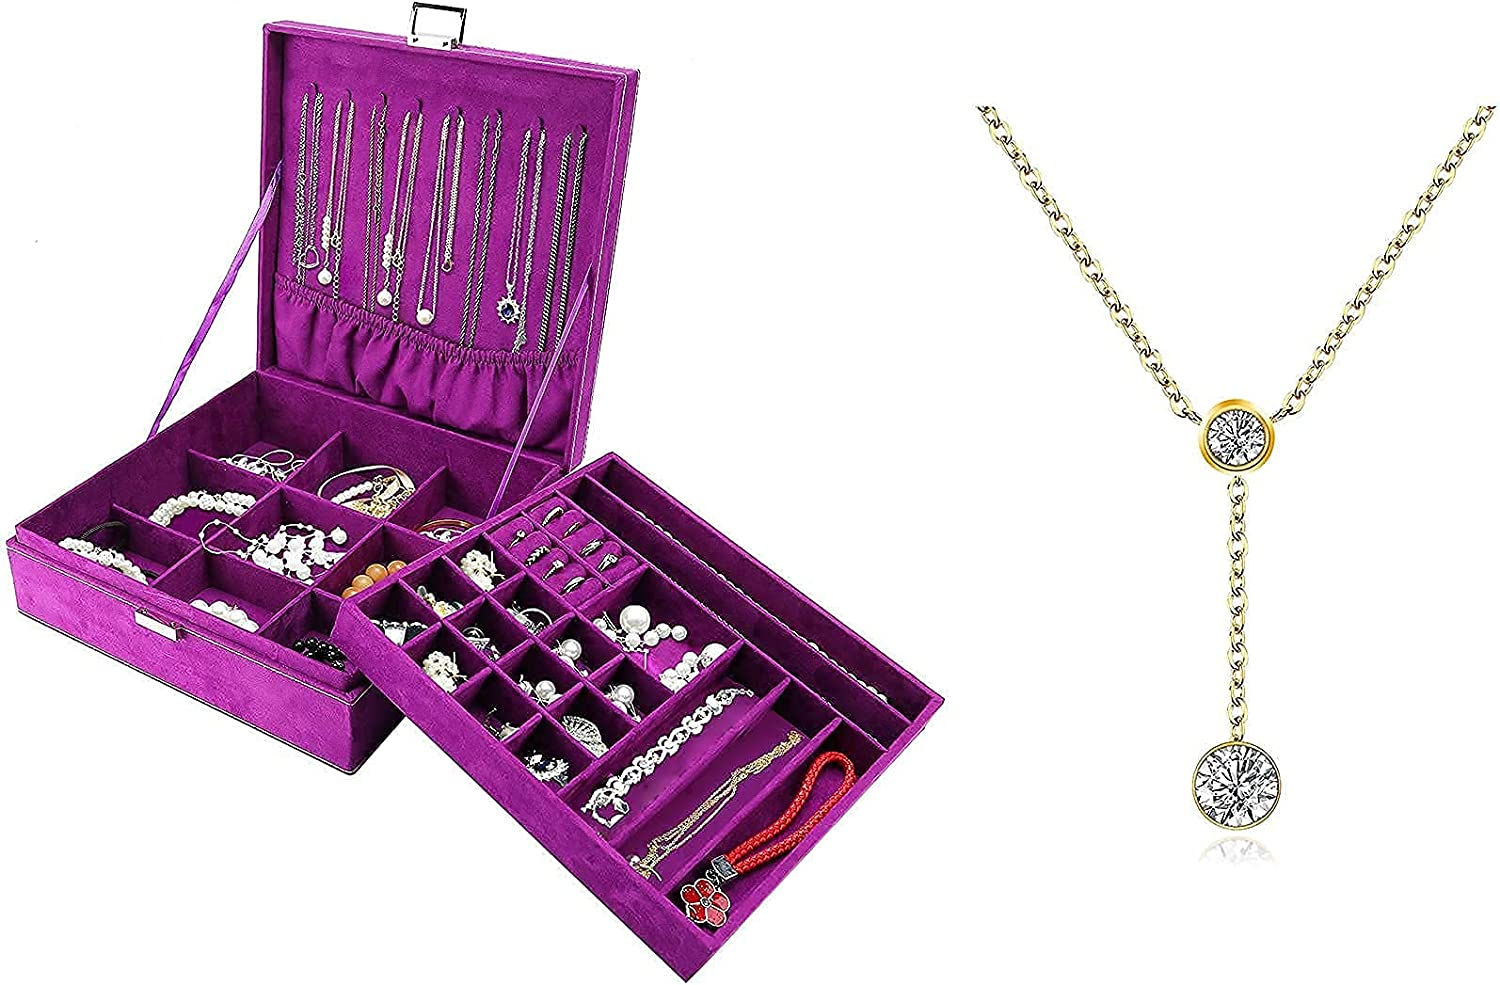 ProCase Jewelry Popular products Box Organizer for with Lolale Girls Women Max 87% OFF Bundle